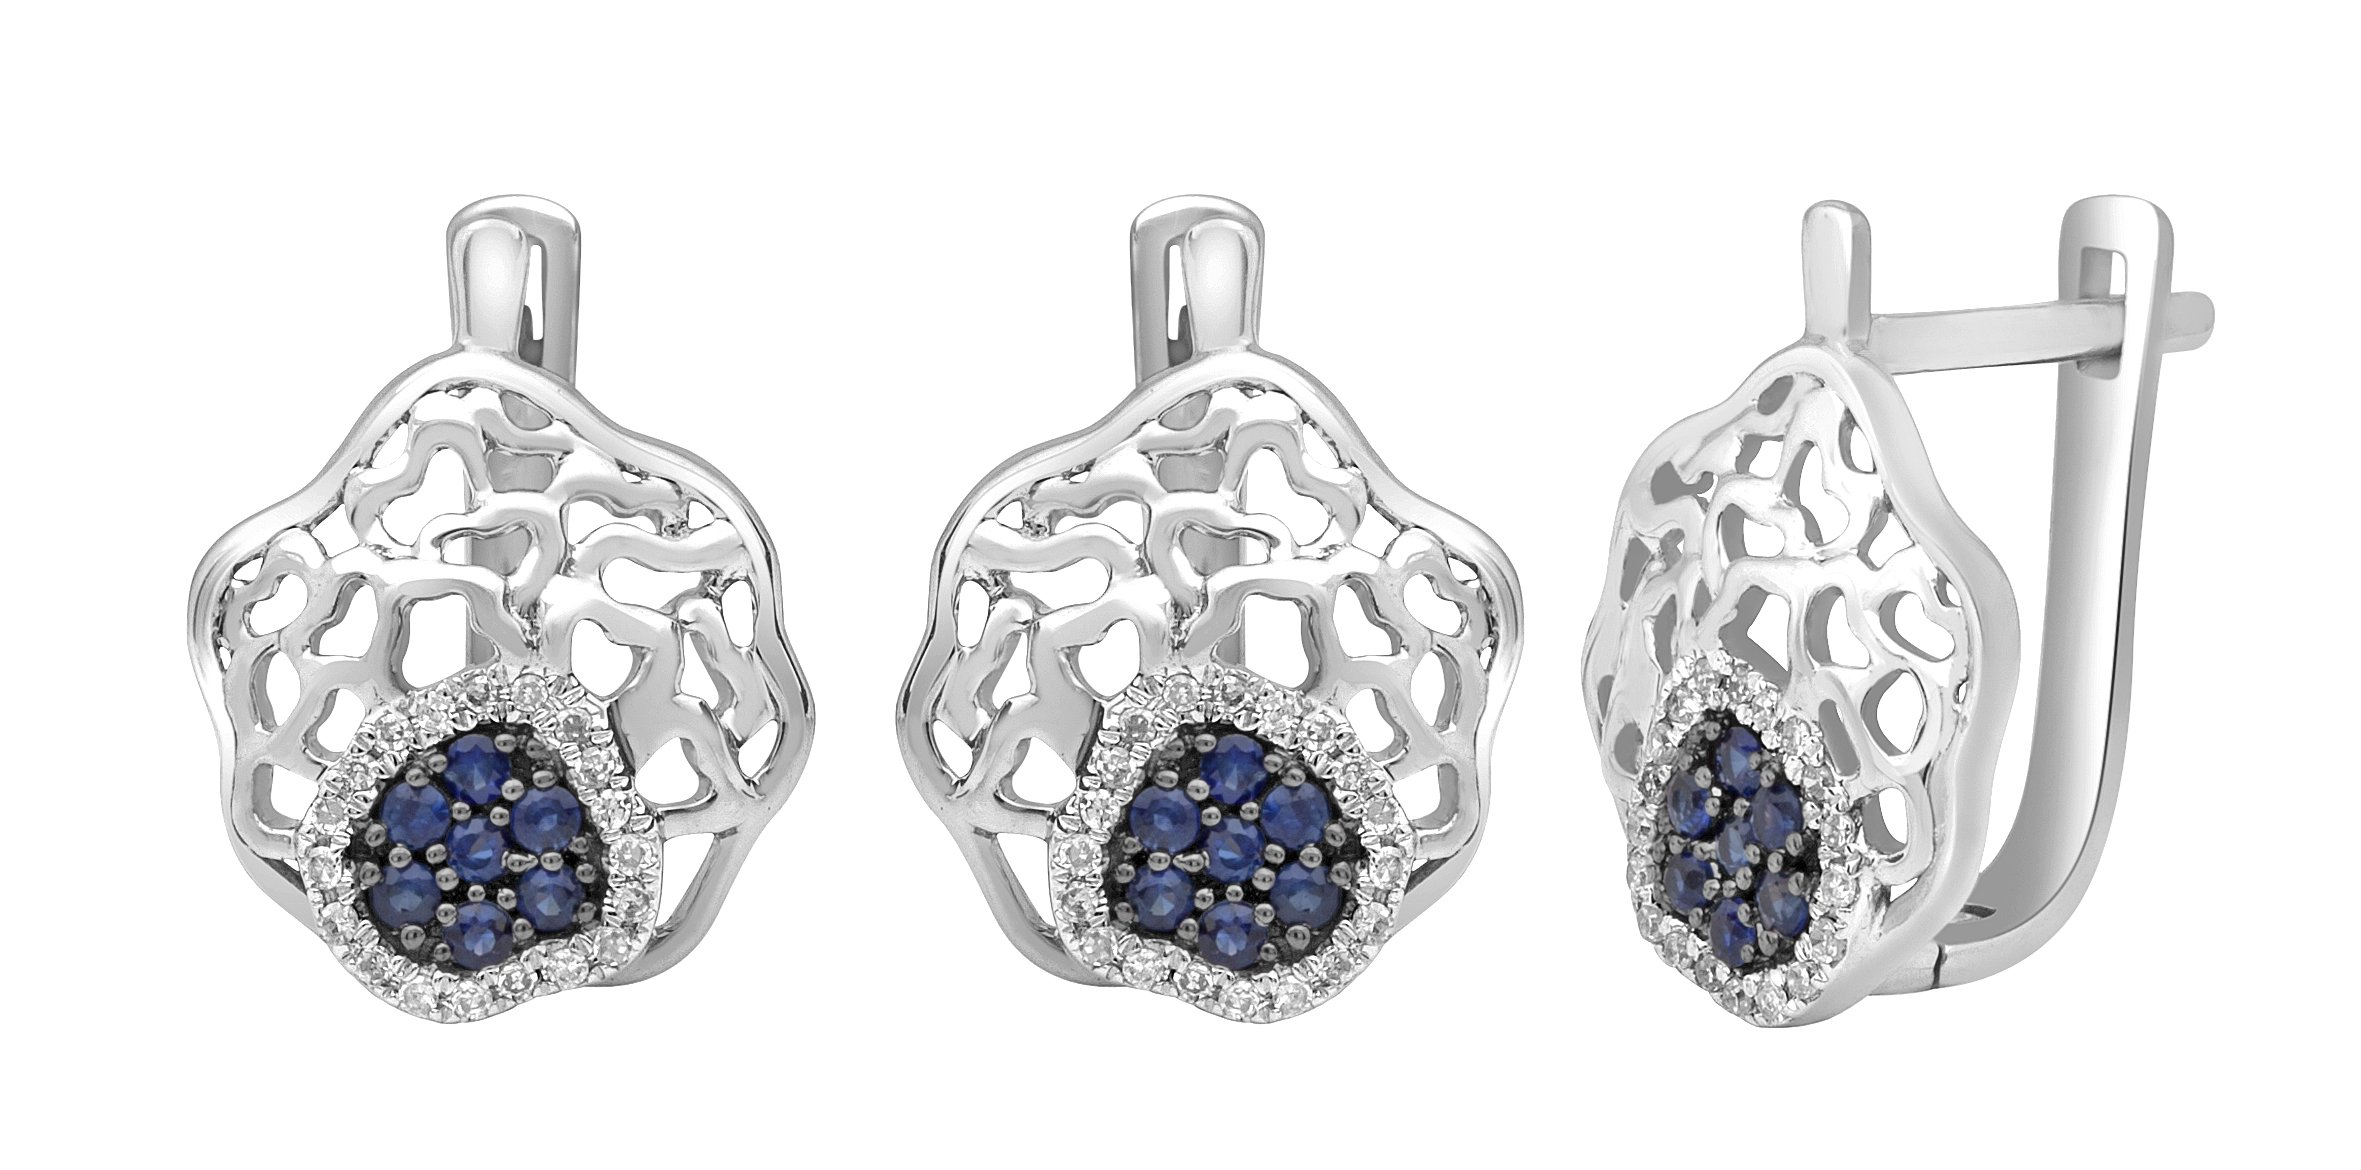 Jewel Ivy 14K White Gold Earring with Sapphire and Diamond Fine Jewelry, Best For Gifting Wife, Girlfriend, Friend, Rare Item !!